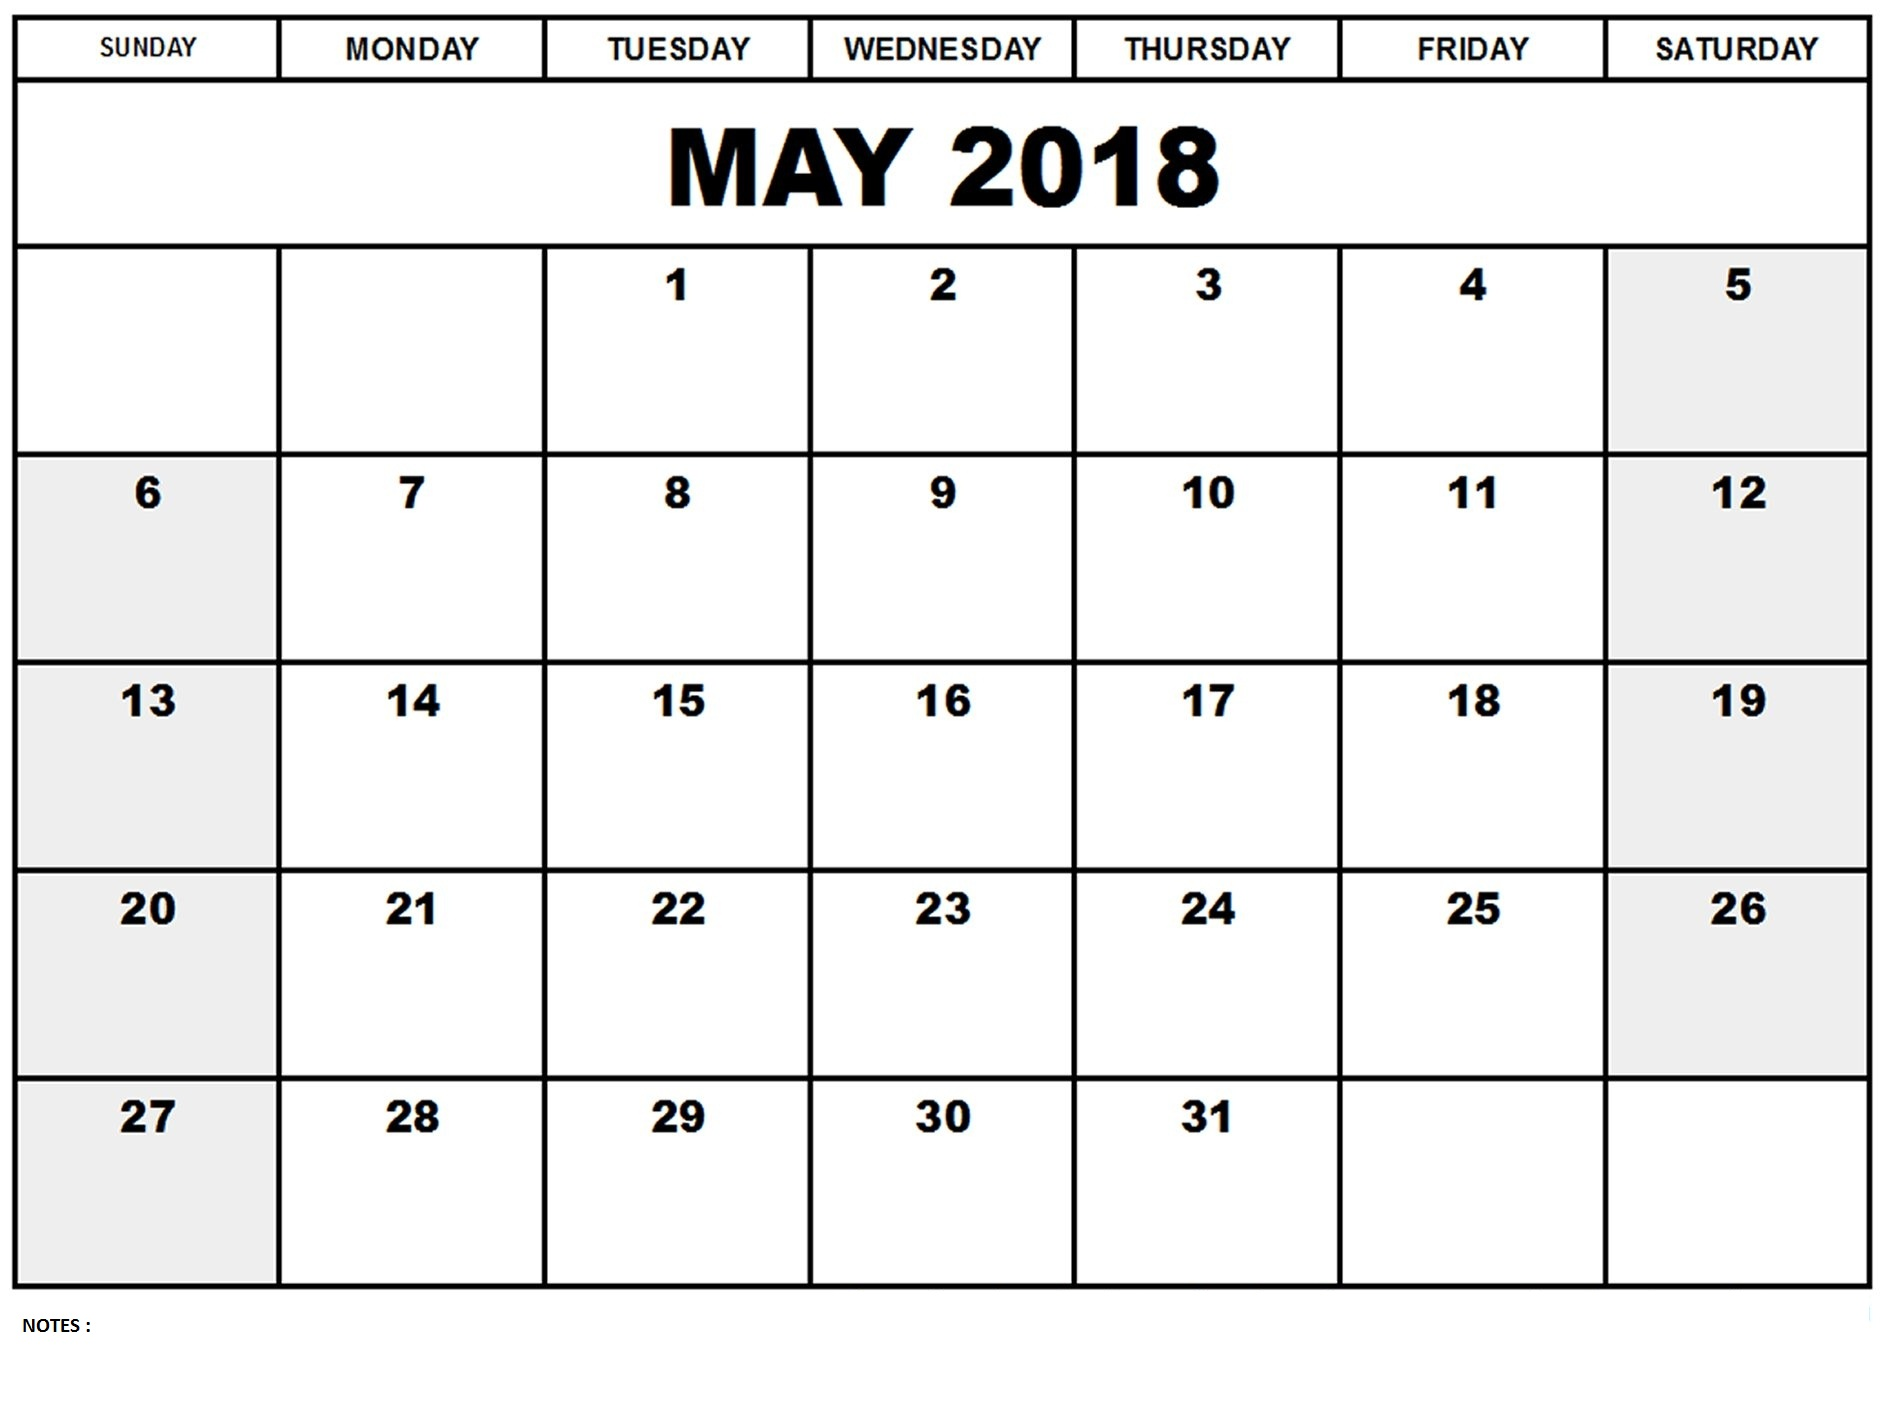 May Calendar 2018 with Notes